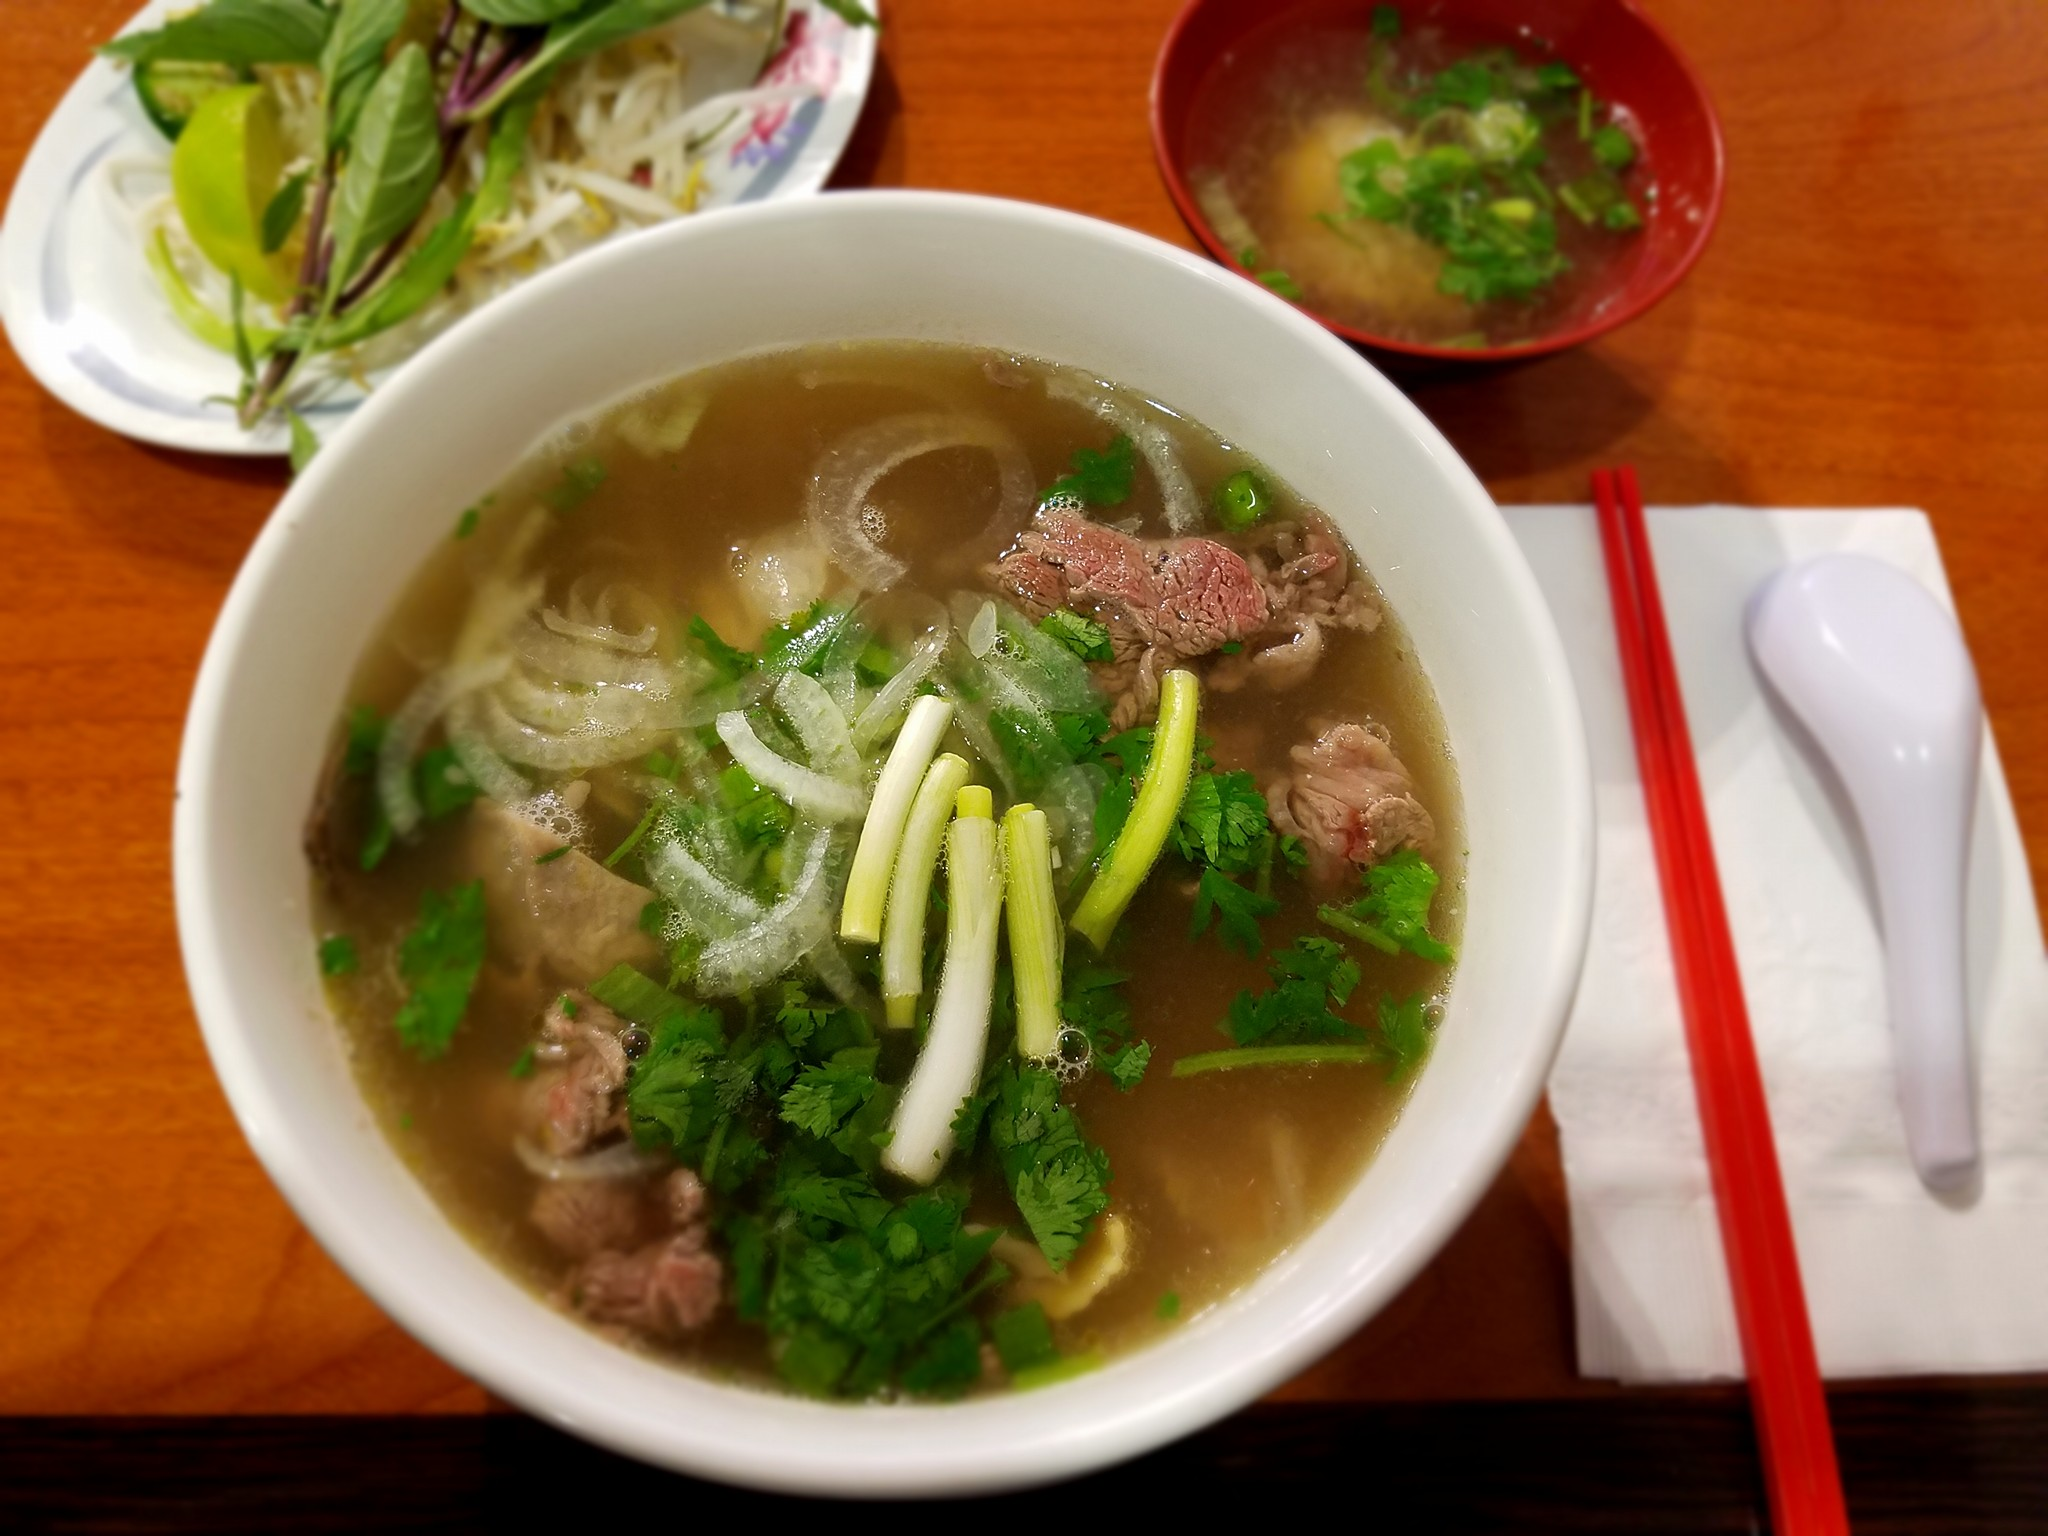 The Best Places To Eat Pho In La Los Angeles The Infatuation